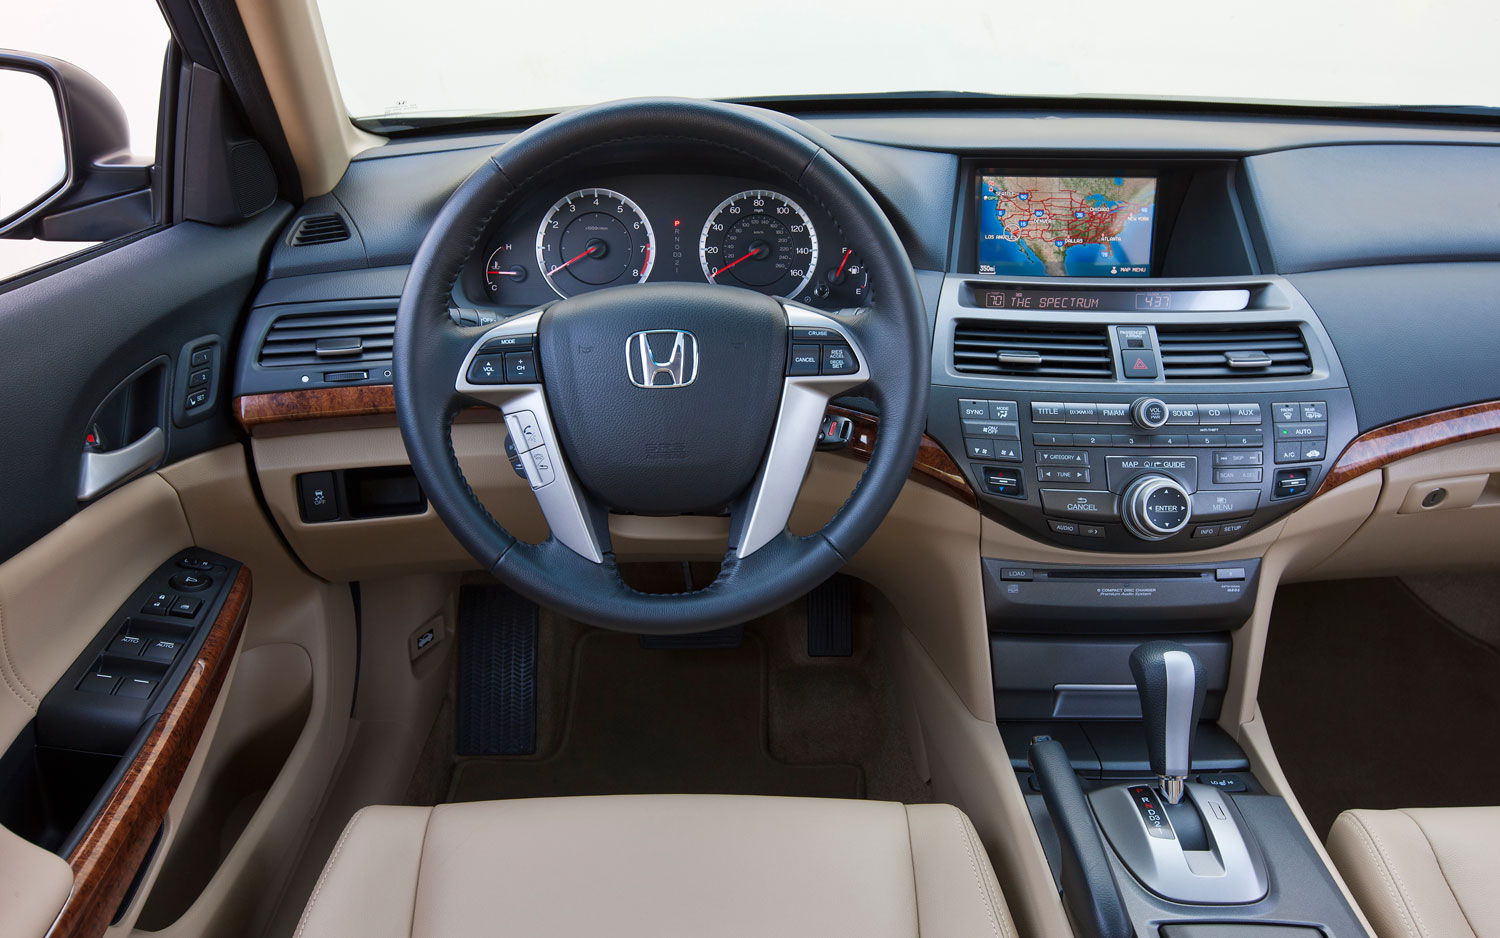 Worksheet. Better Late Than Never Honda to Update Infotainment System